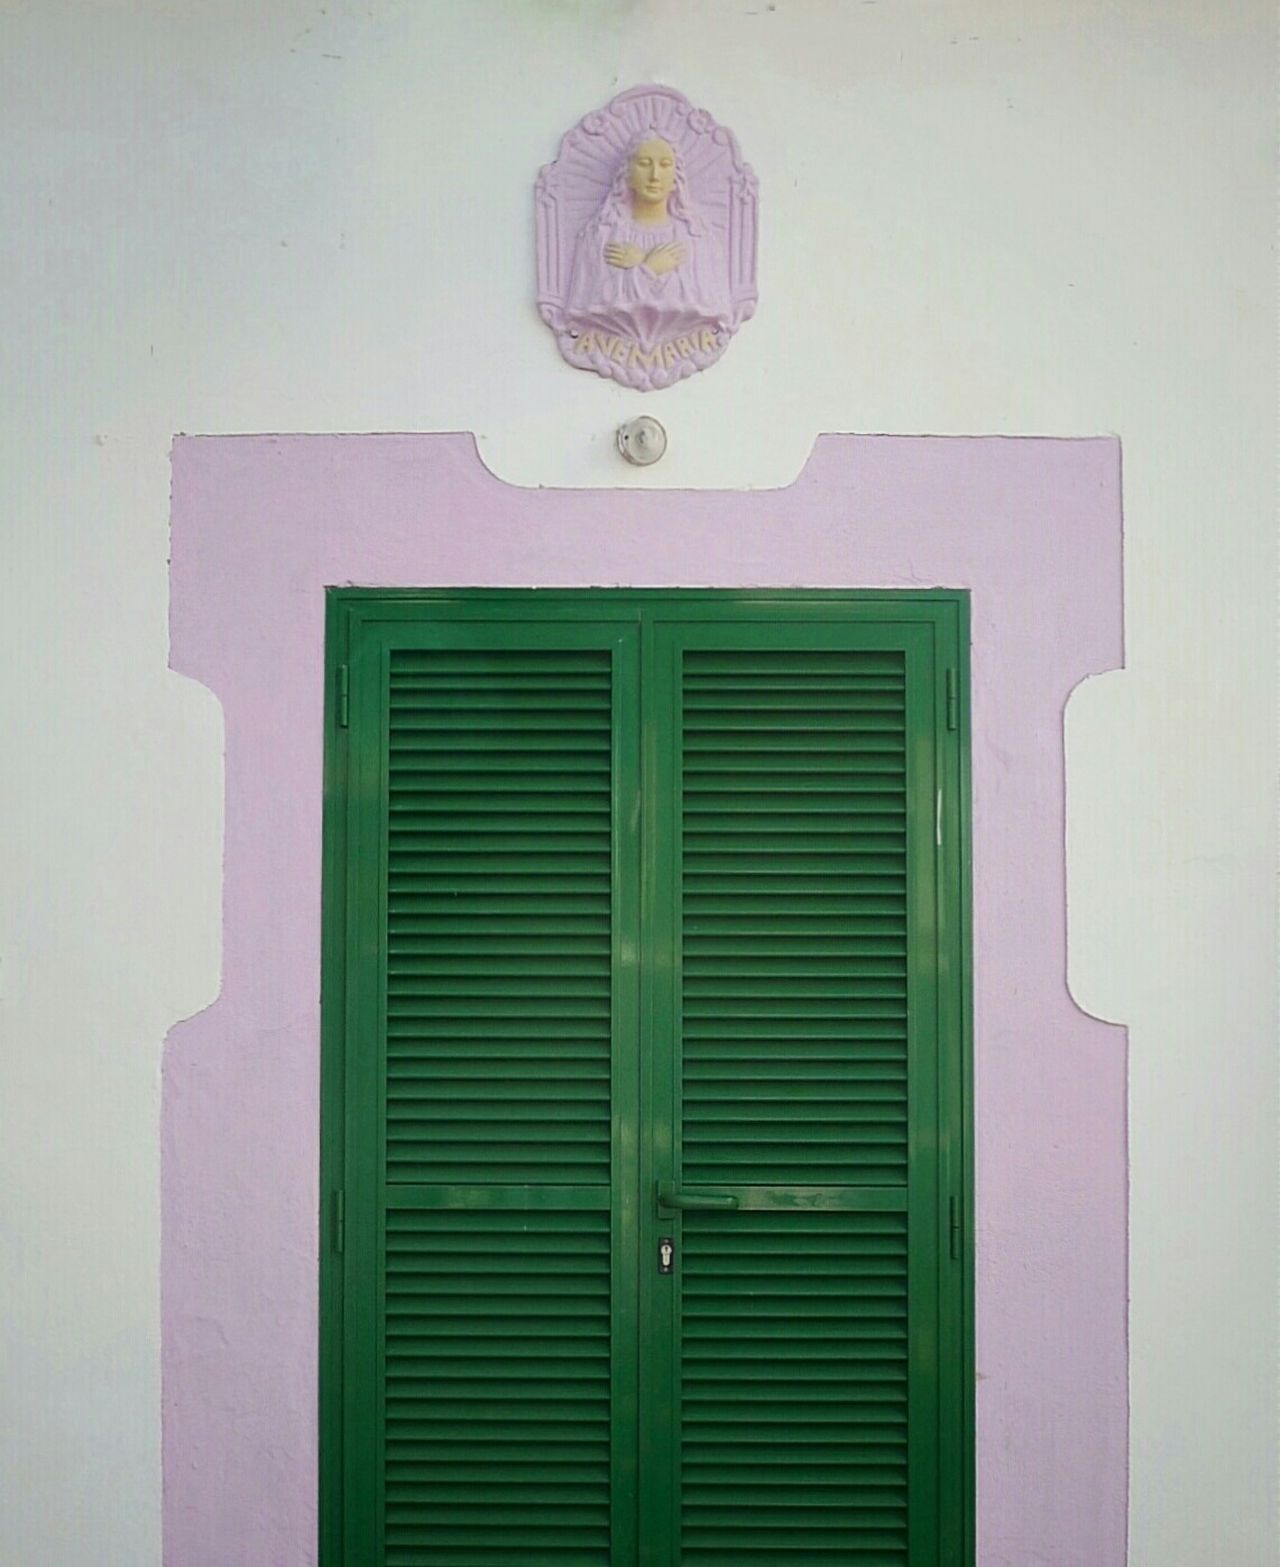 Doors Lover Madonna Closed Door Green Andpink Serenity & Tranquility Outdoor Photography No People Minimalism #minimalist #minimal #TagsForLikes #minimalistic #minimalistics #minimalove #minimalobsession #photooftheday #minimalninja #instaminim #minimalisbd #simple #simplicity #keepitsimple #minimalplanet #love Instagood Minimalhunter Minimalista M [a:11320443] detail of fAcade Green And Pink Colour Religion, Virgin Mary, Catholic, Christian,